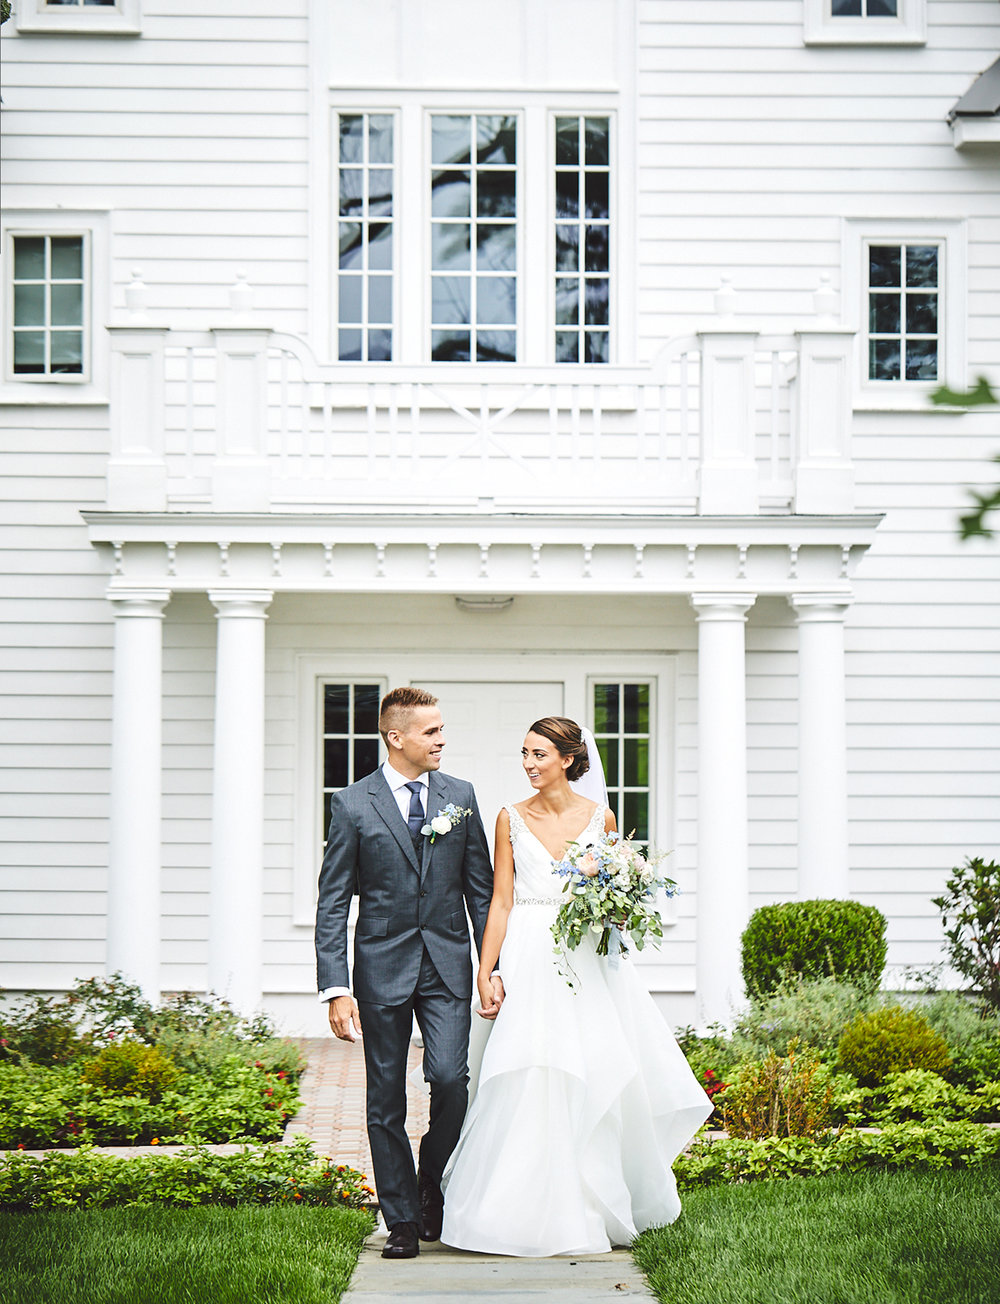 180819_TheRylandInnWeddingPhotography_TheRylandInnWeddingPhotographer_By_BrJohnsonWeddings_0055.jpg